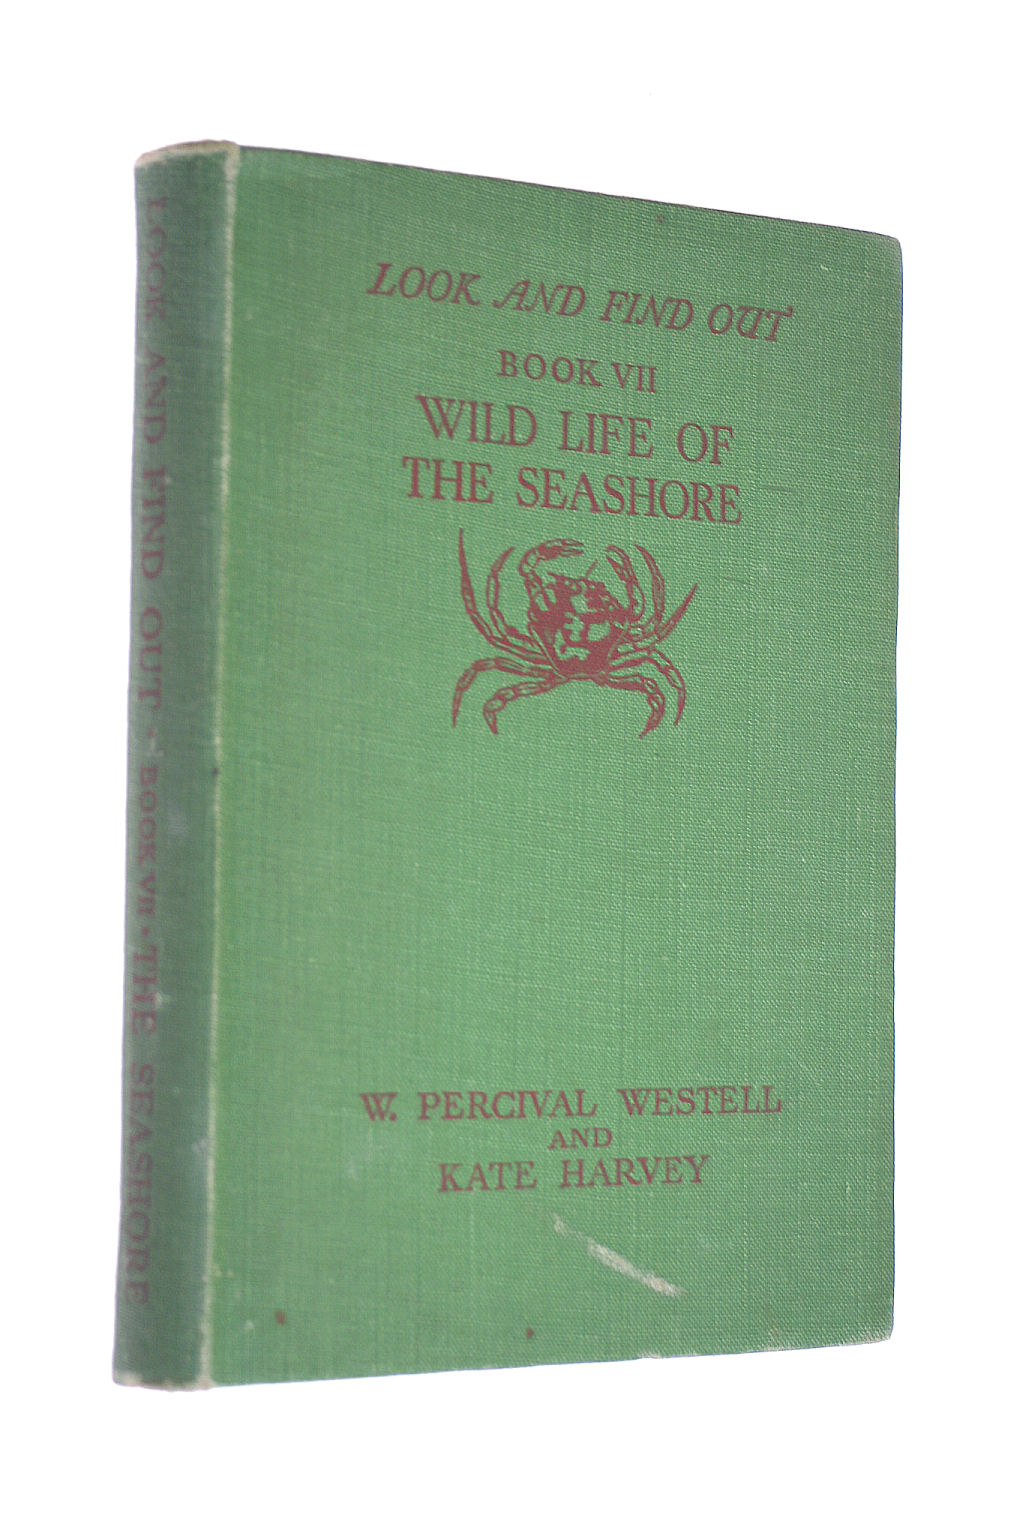 Image for The Wild Life Of The Seashore (Look And Find Out Series)- Book Vii